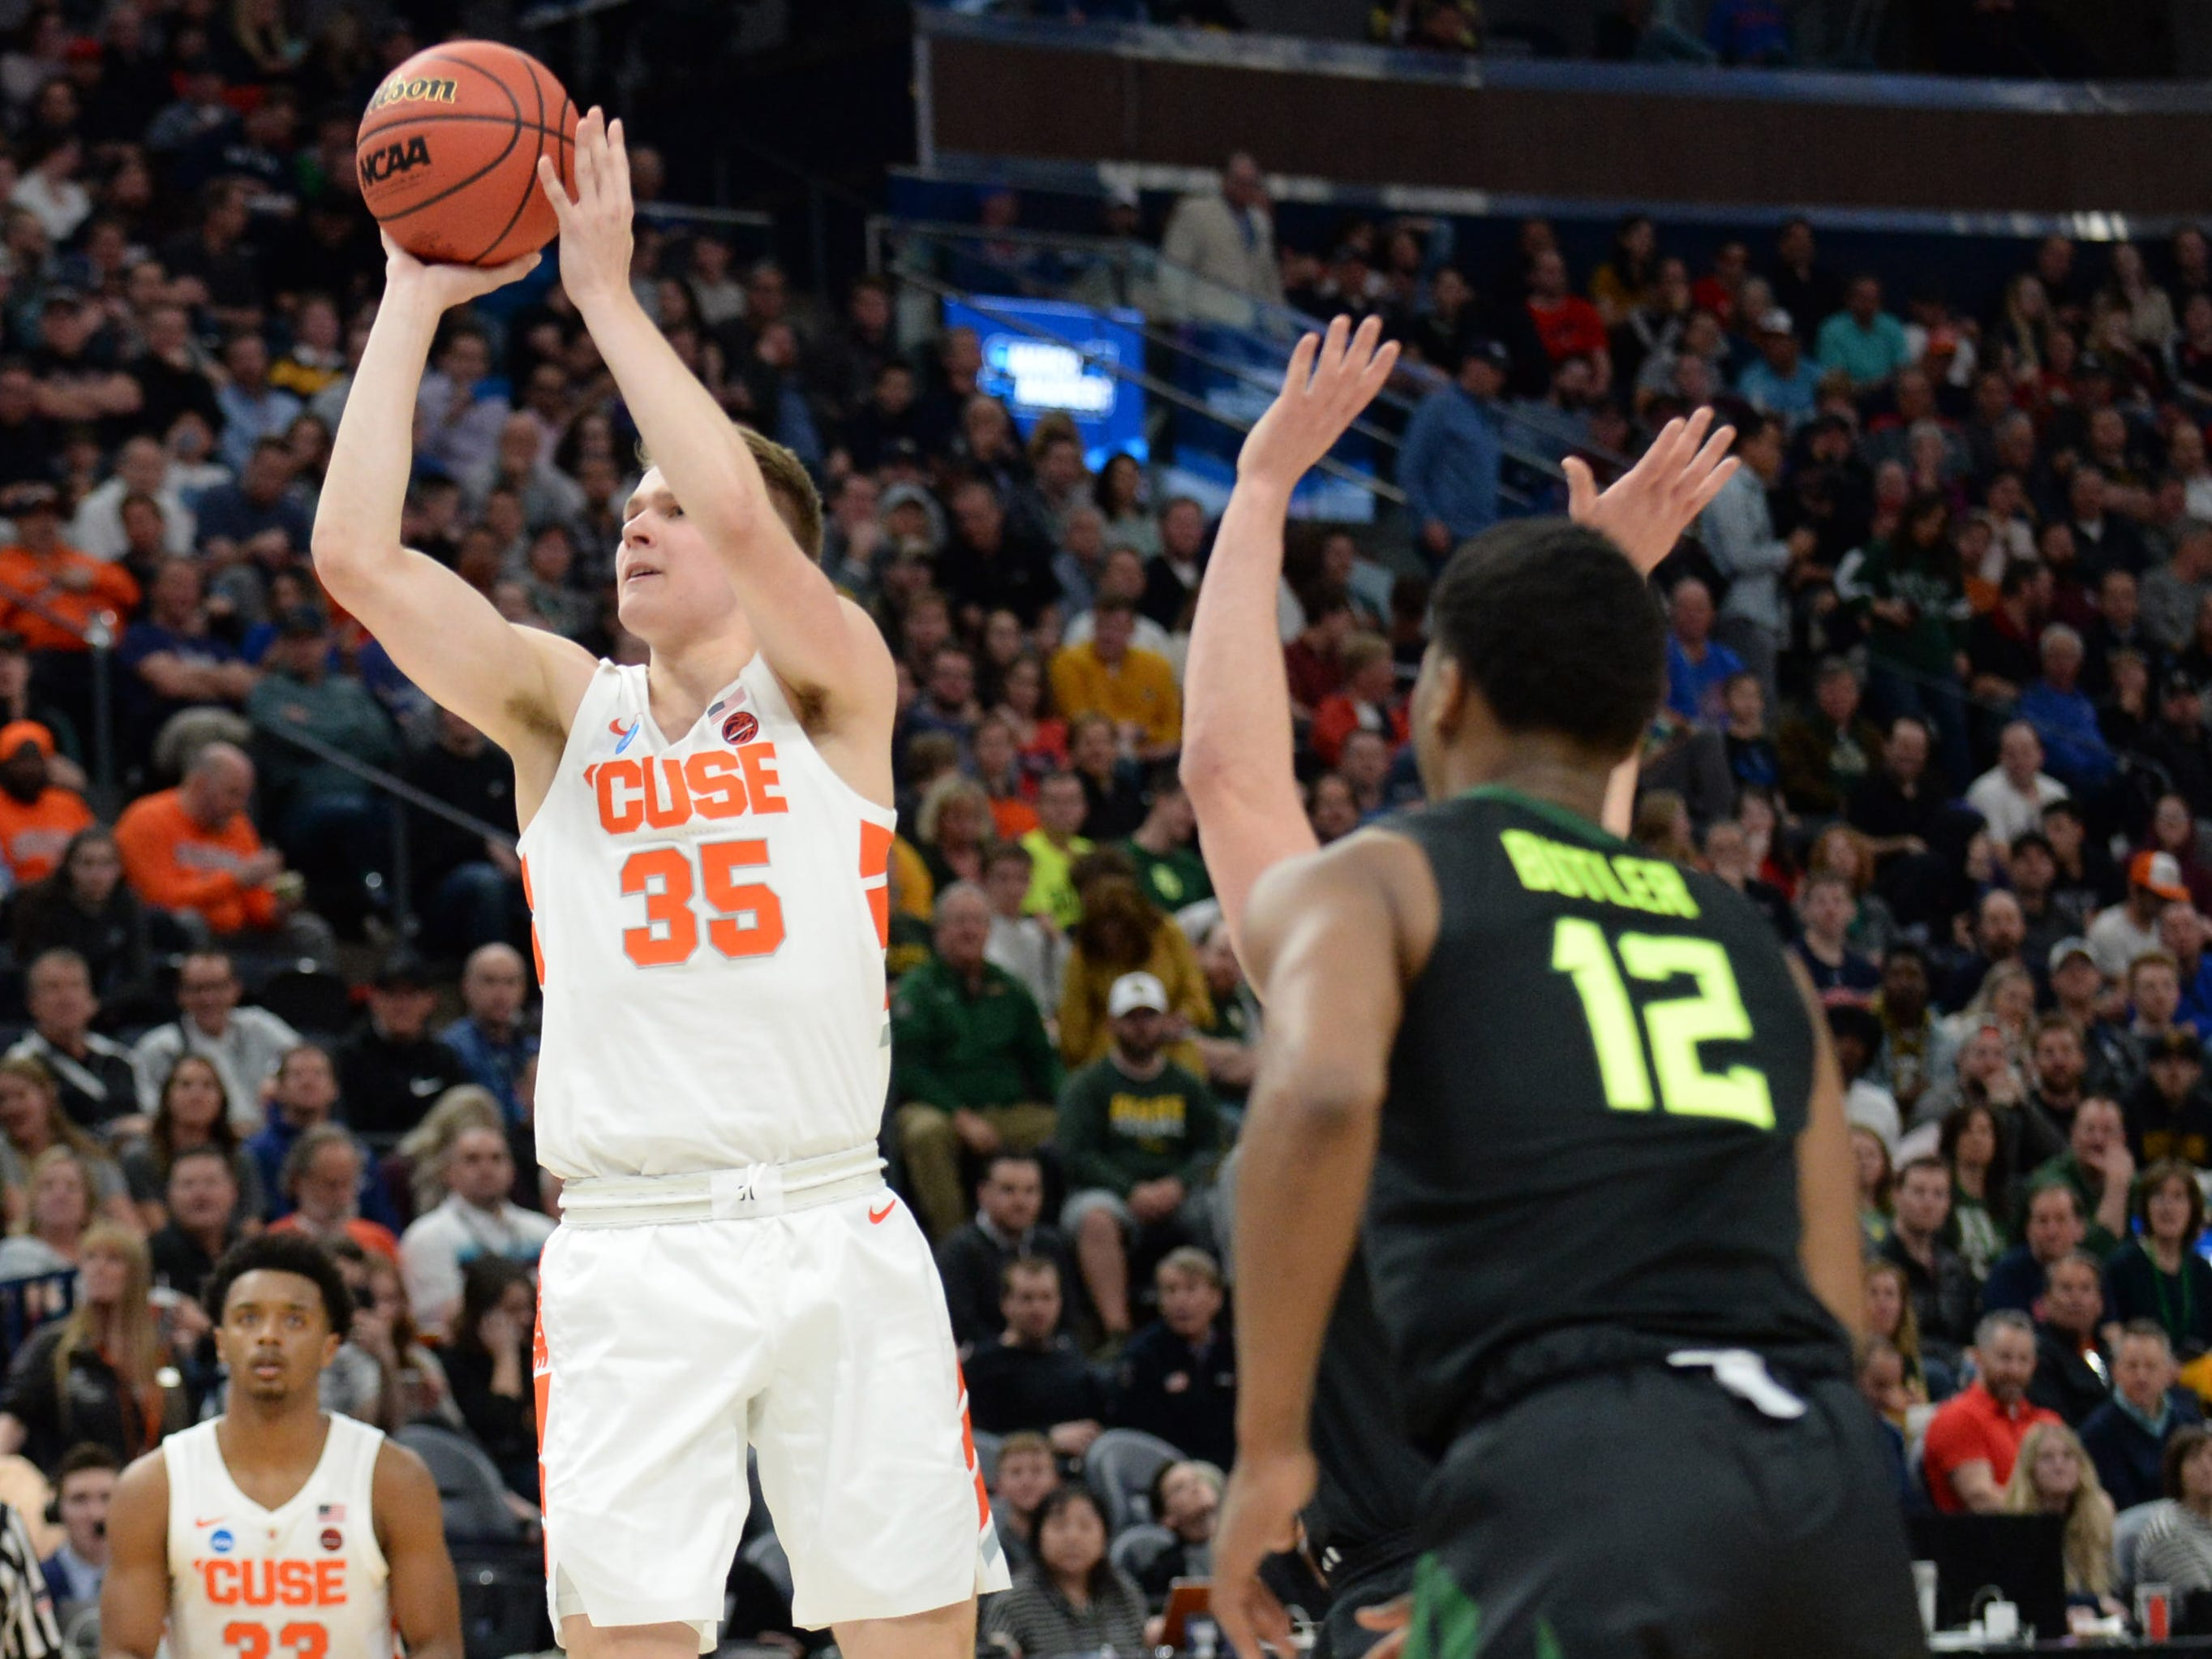 Syracuse  guard Buddy Boeheim (35) shoots against the Baylor Bears during the second half of Thursday night's game in Salt Lake City.